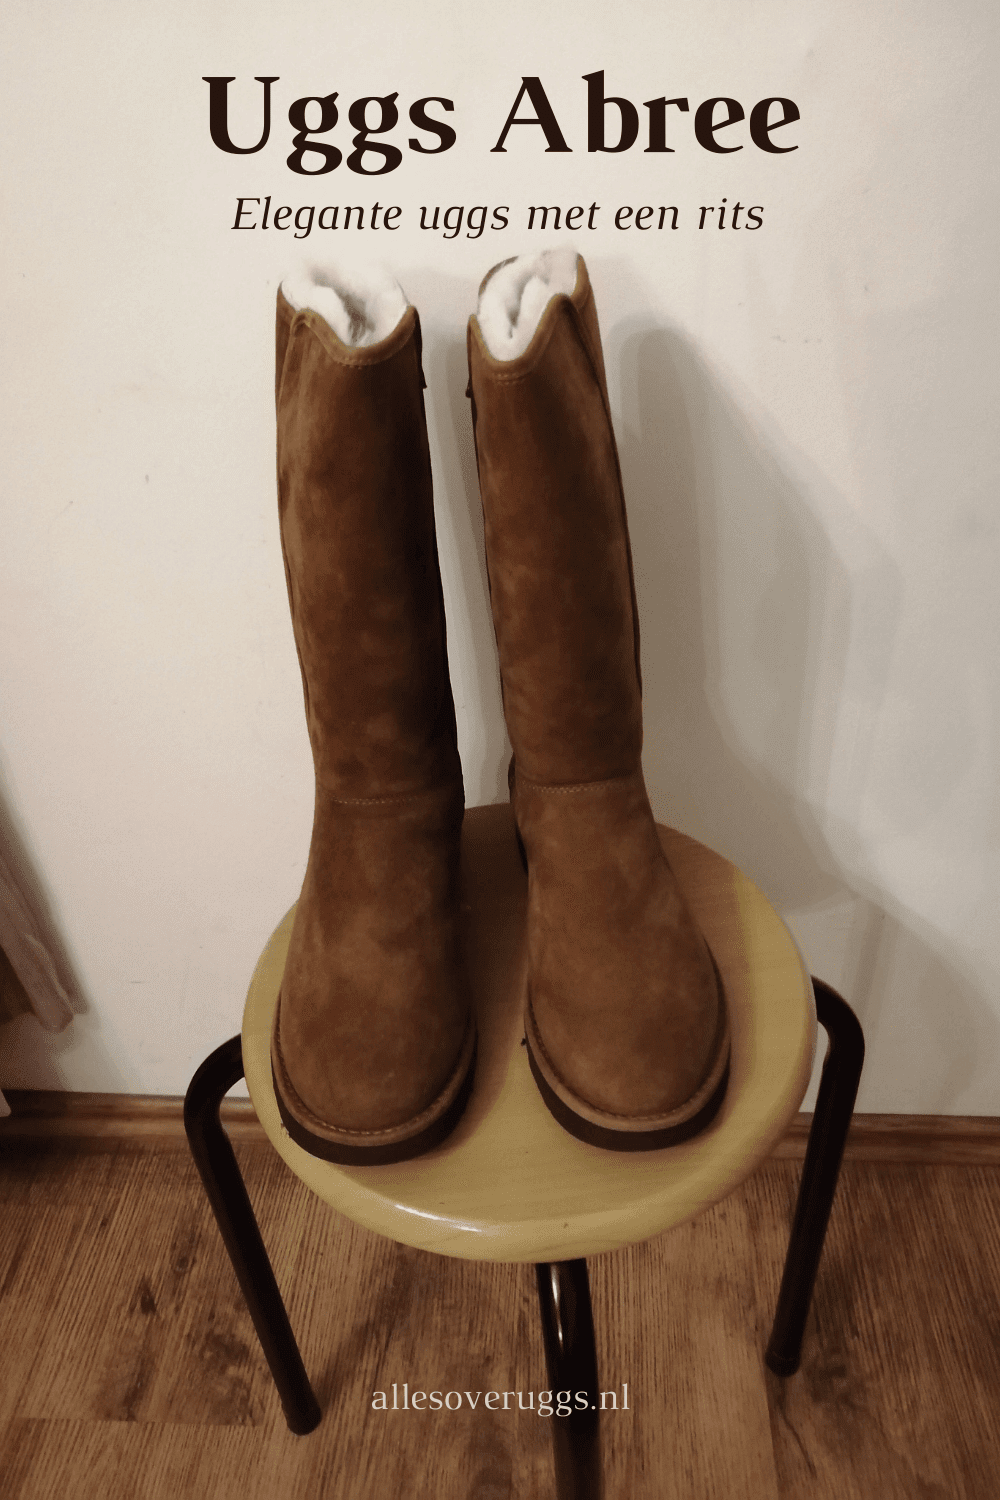 Uggs Abree review